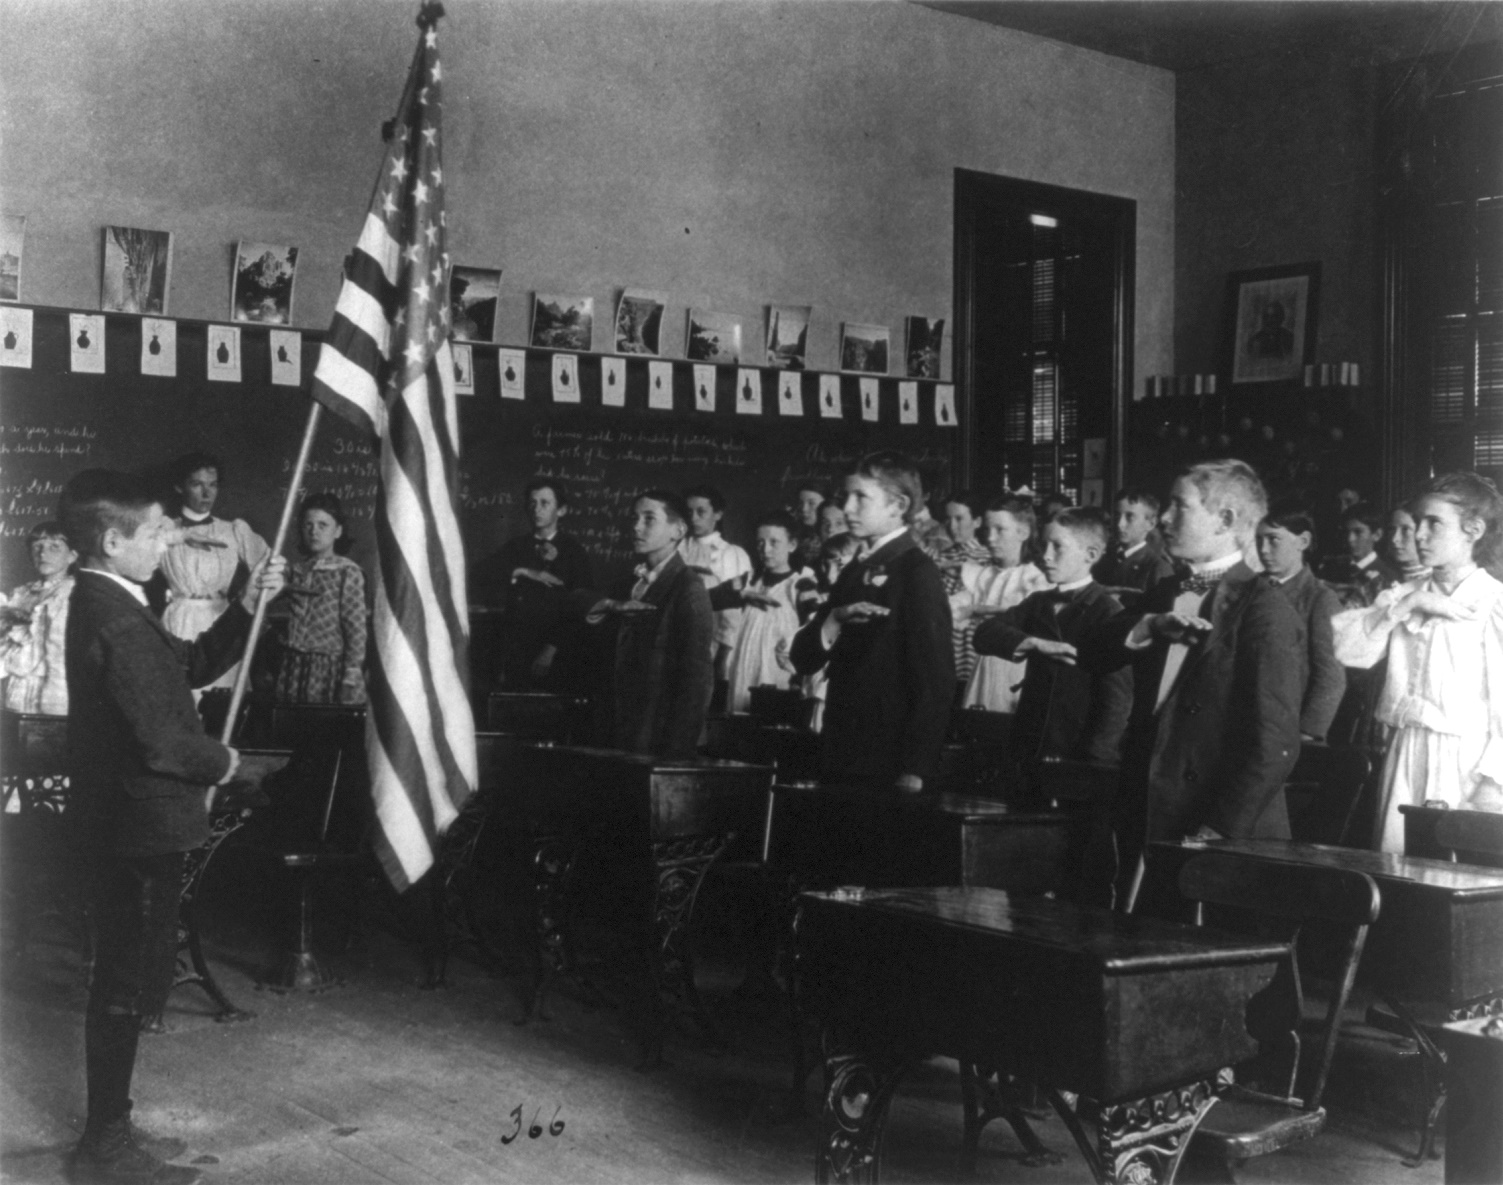 Student pledging to the flag, 1899.